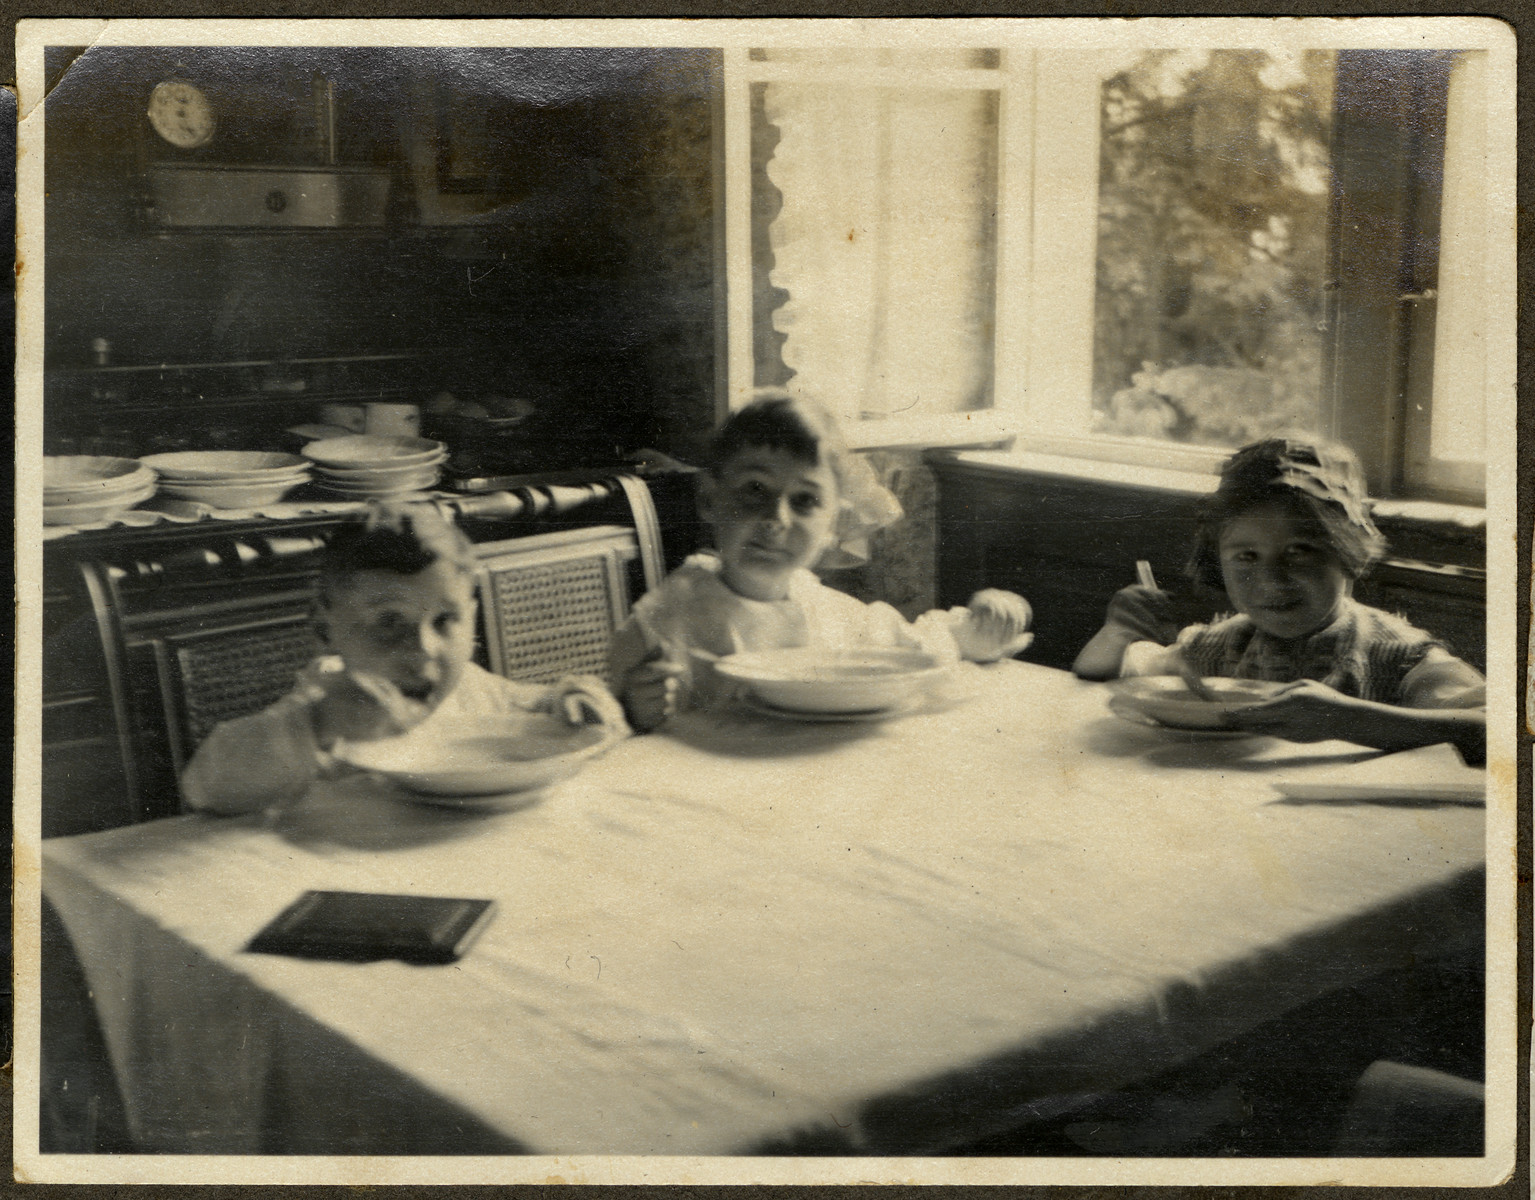 Paul, Kurt and Marianne Ehrenfeld sit at a table and eat soup.